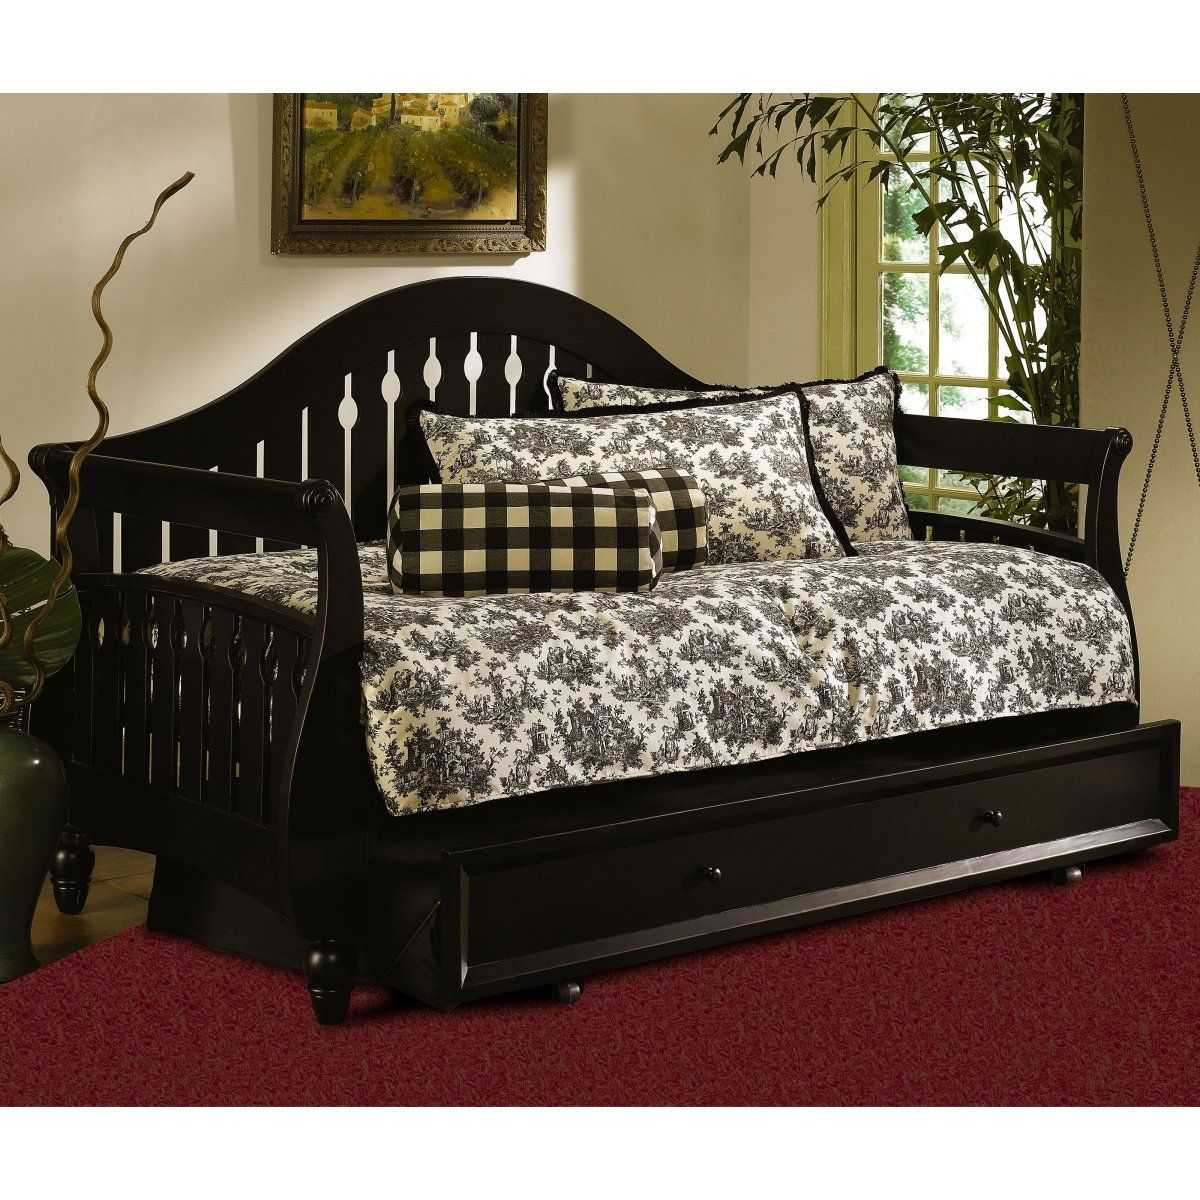 fraser daybed black free mattress daybeds at daybeds beds